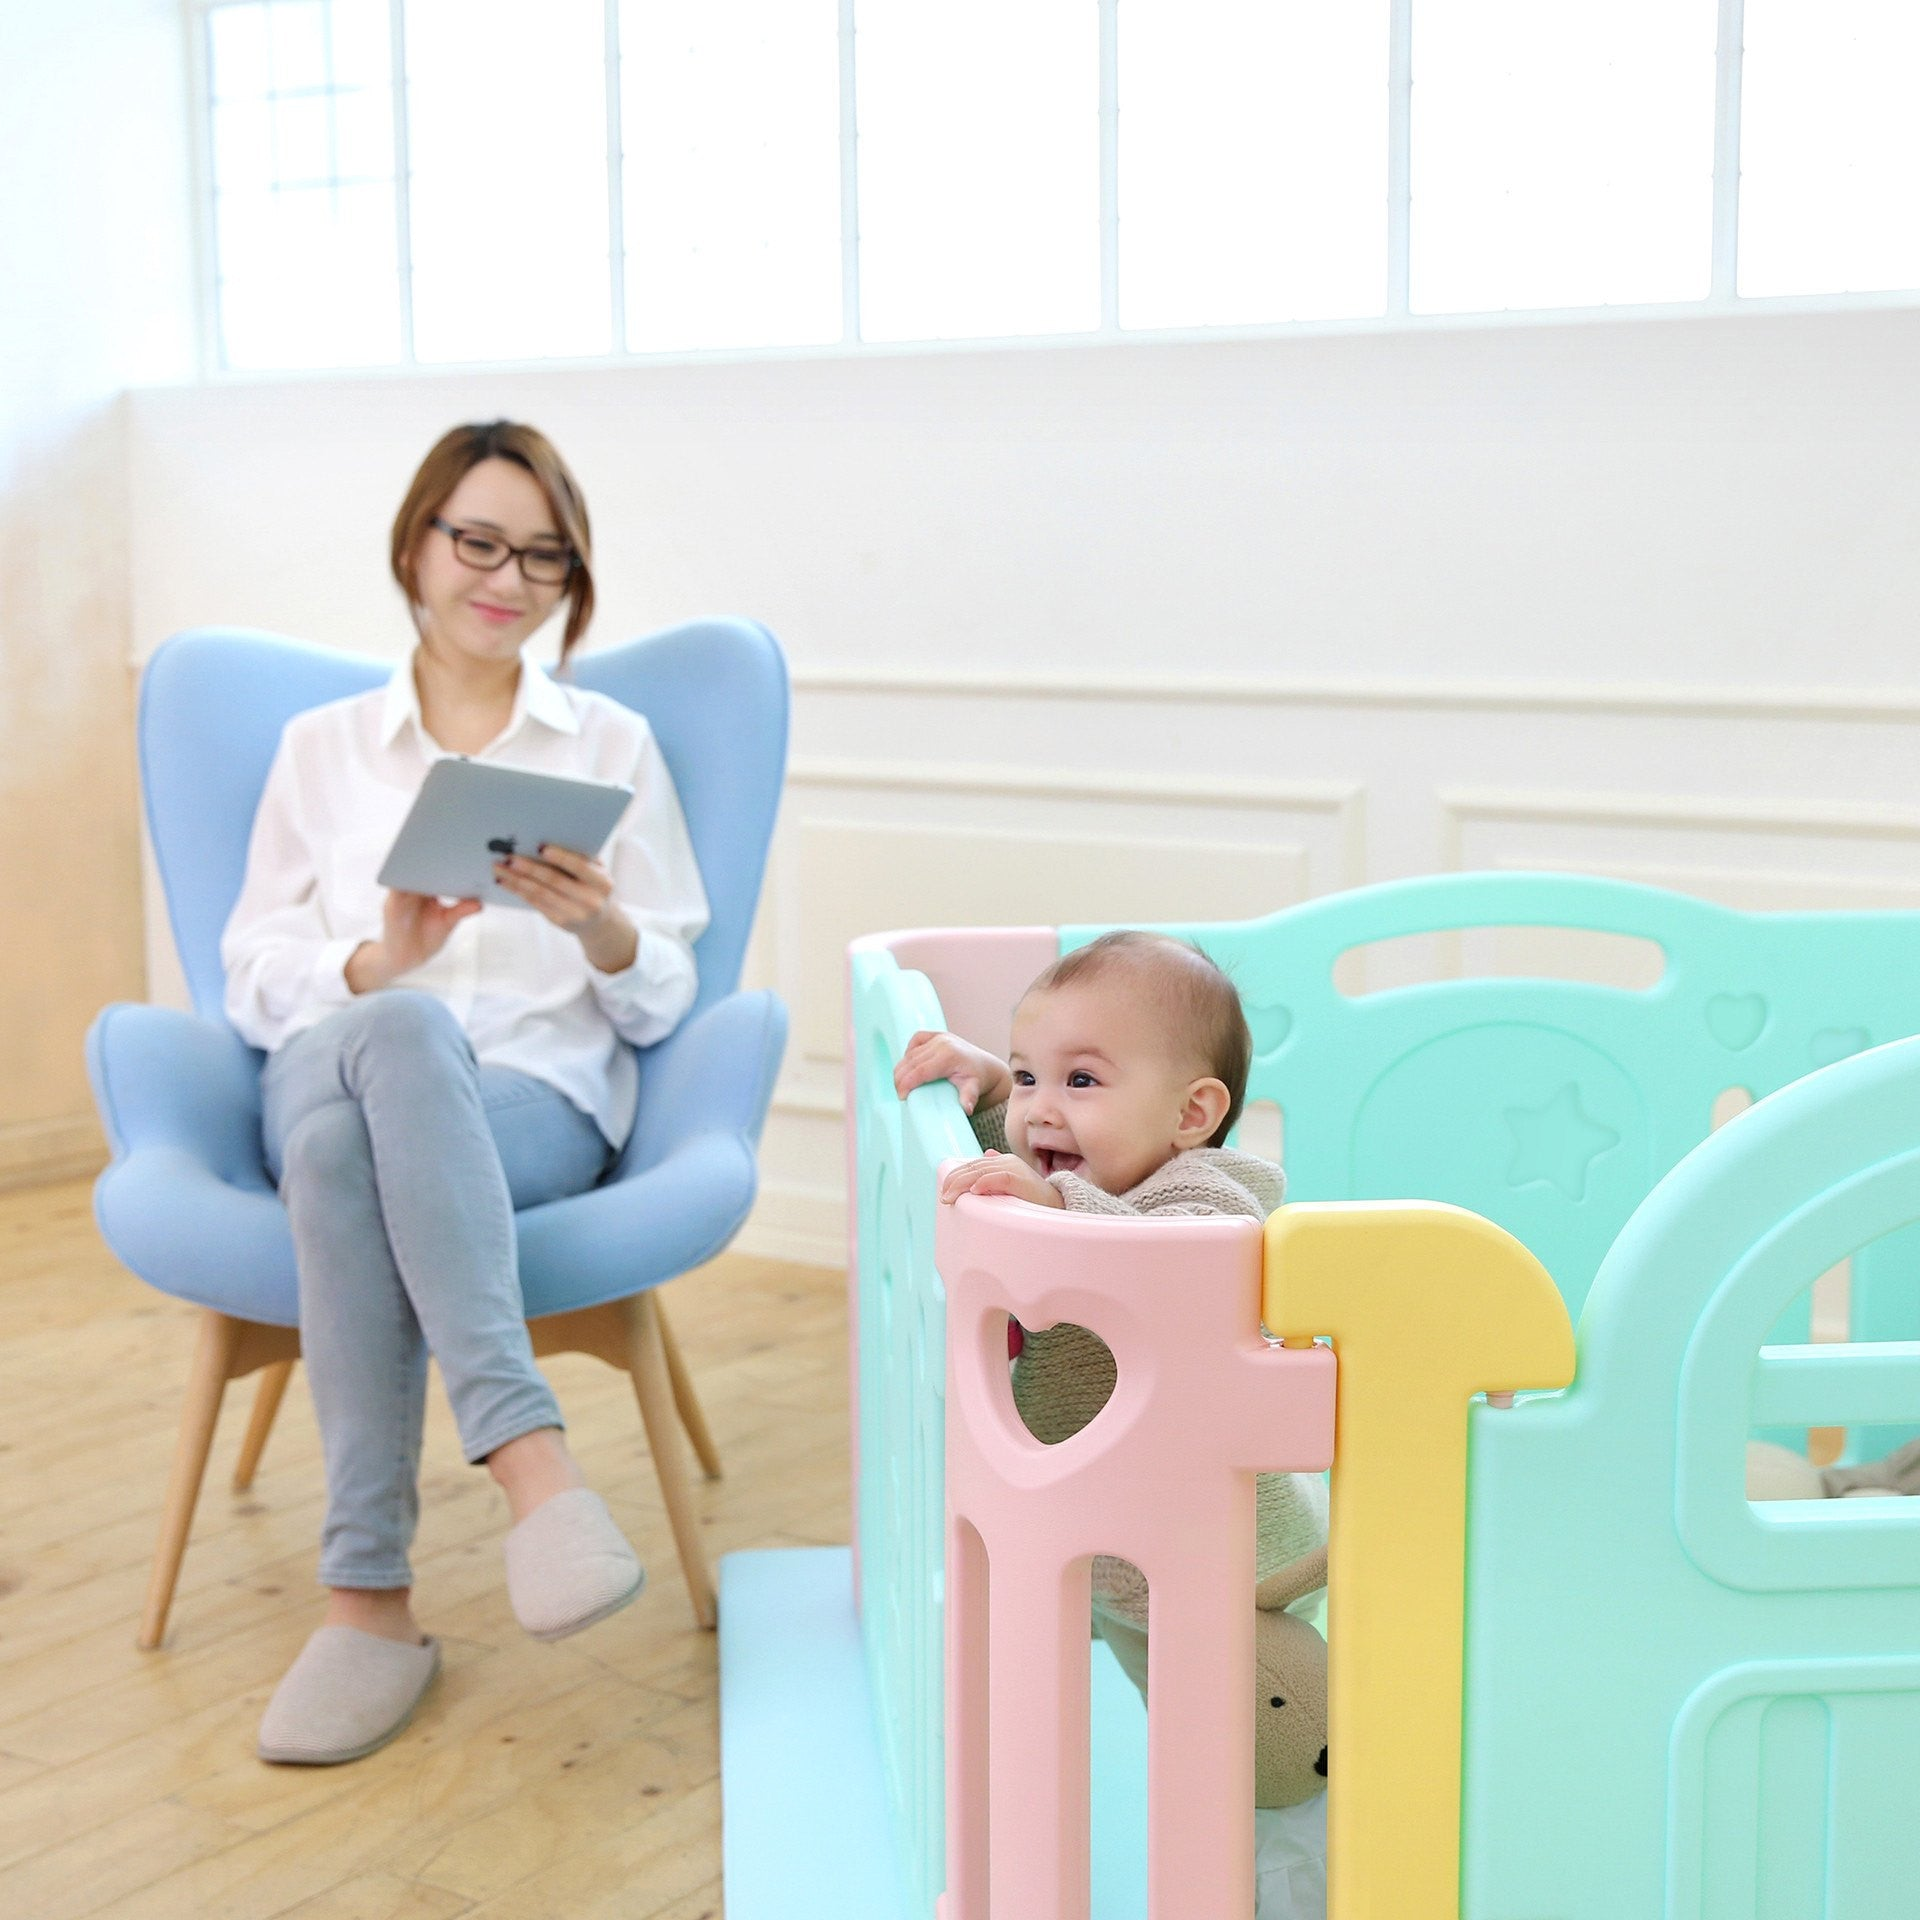 (Pre-Order) Marshmallow Baby Play Yard - Small (mats not included) - IFAM (Made in South Korea) - Adertek Lifestyle